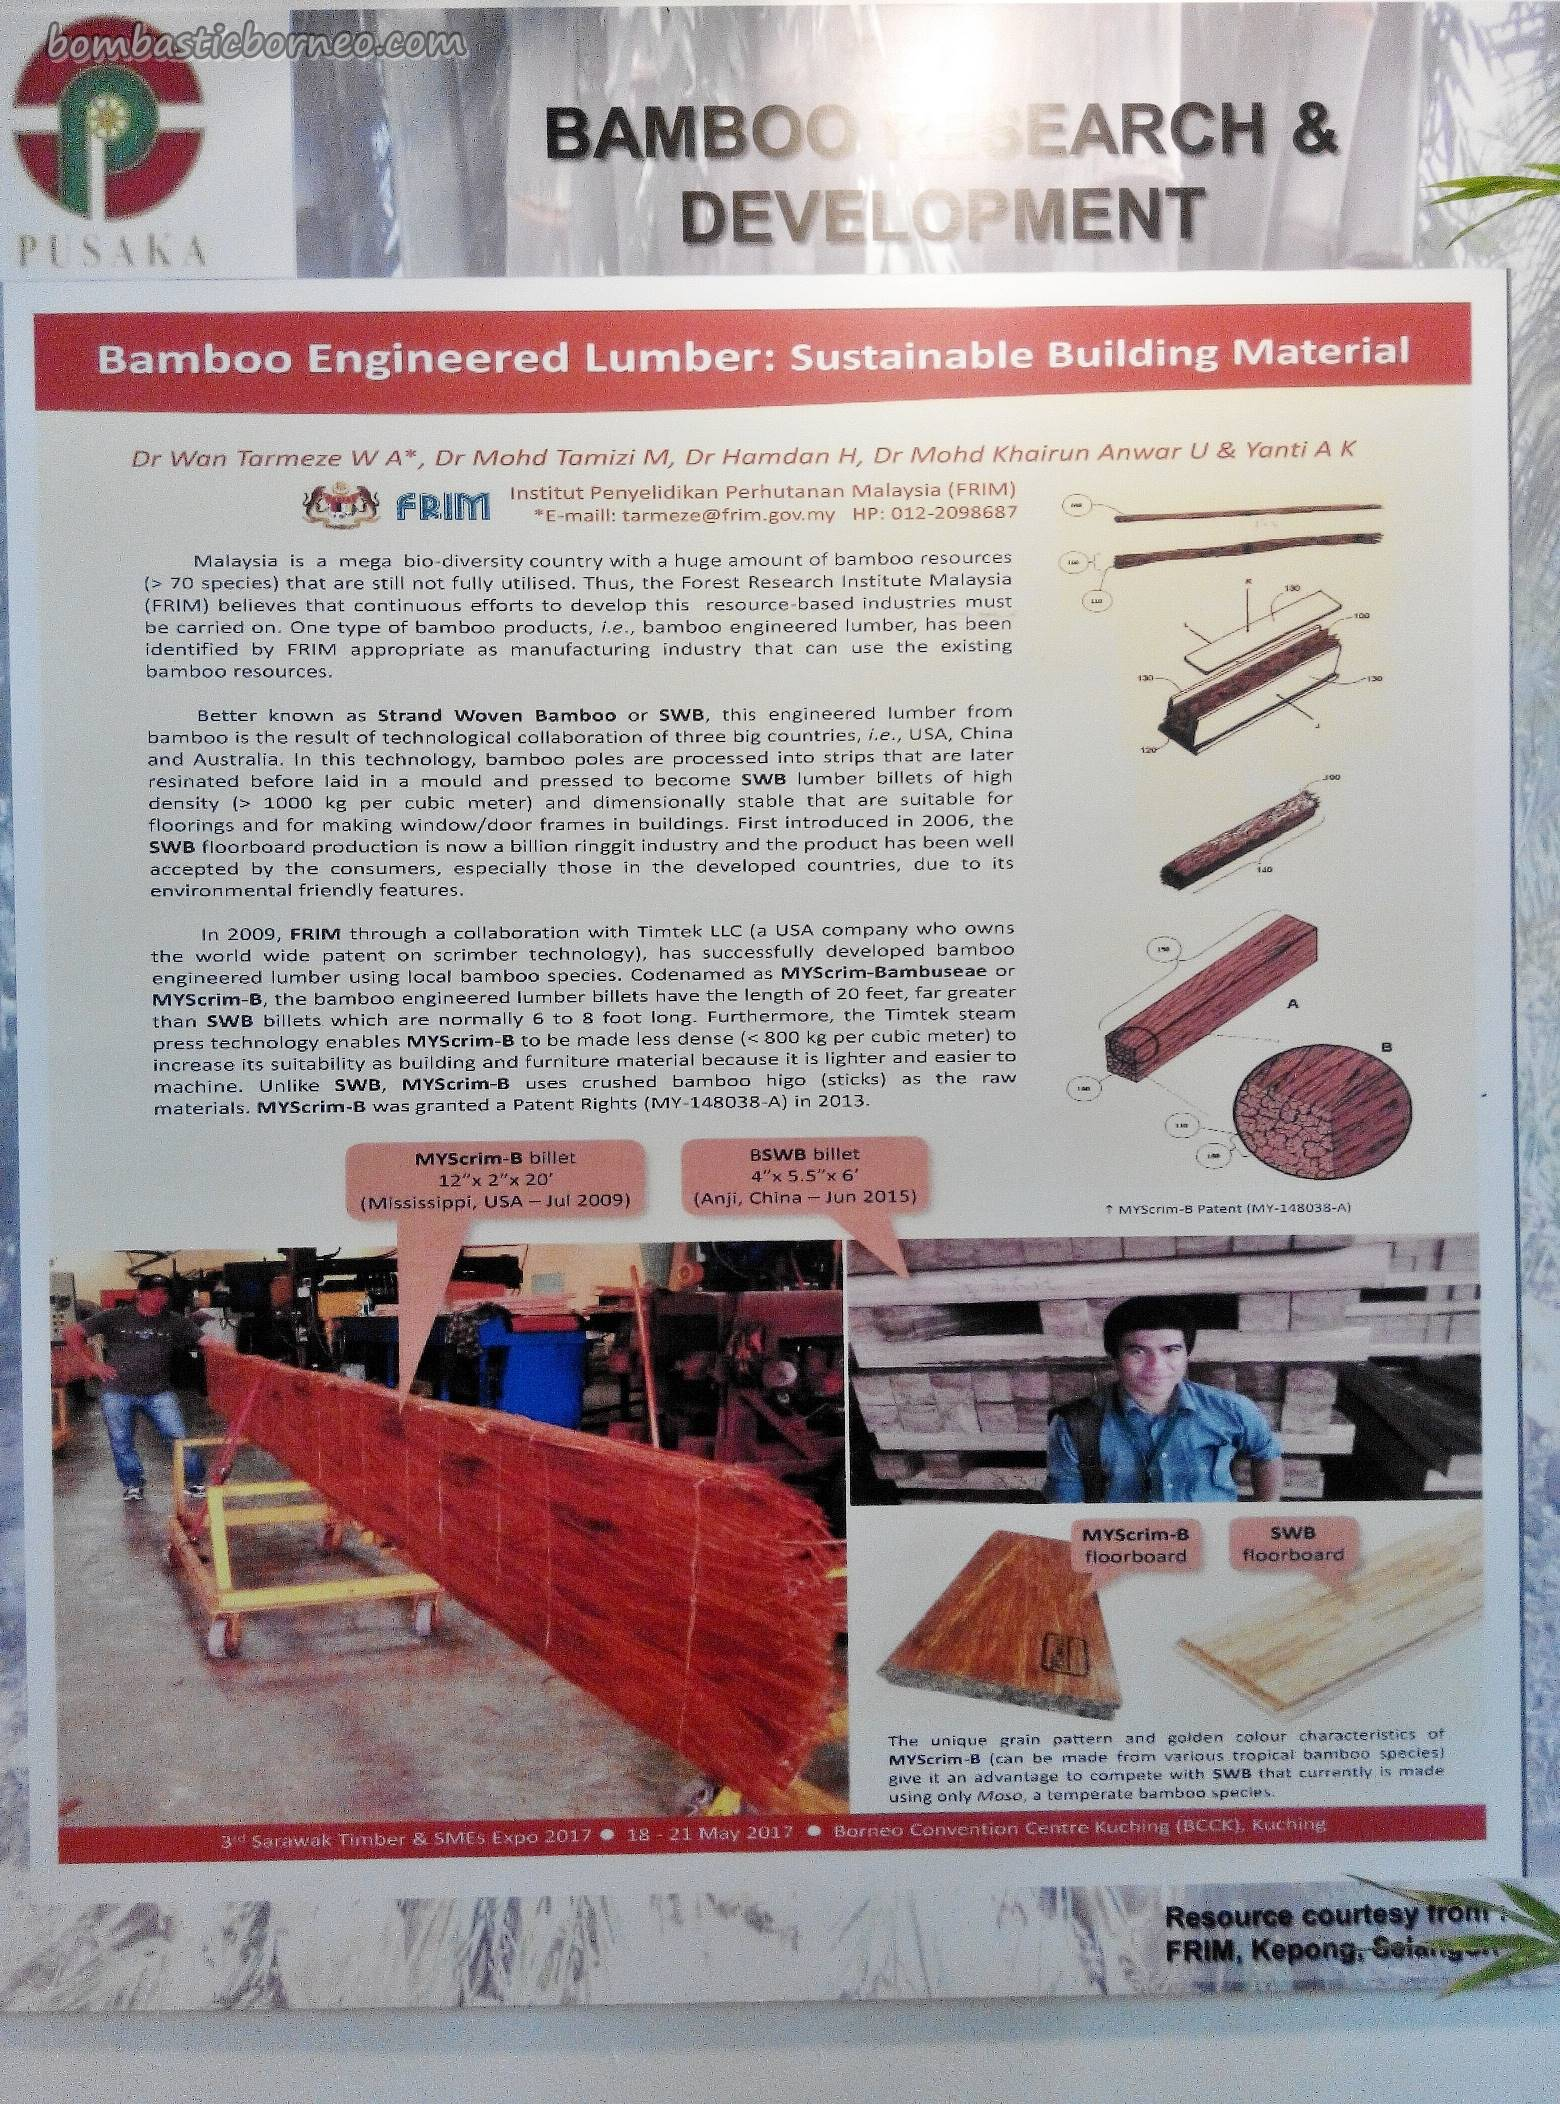 Sarawak Timber SMEs Expo, Borneo Convention Centre Kuching